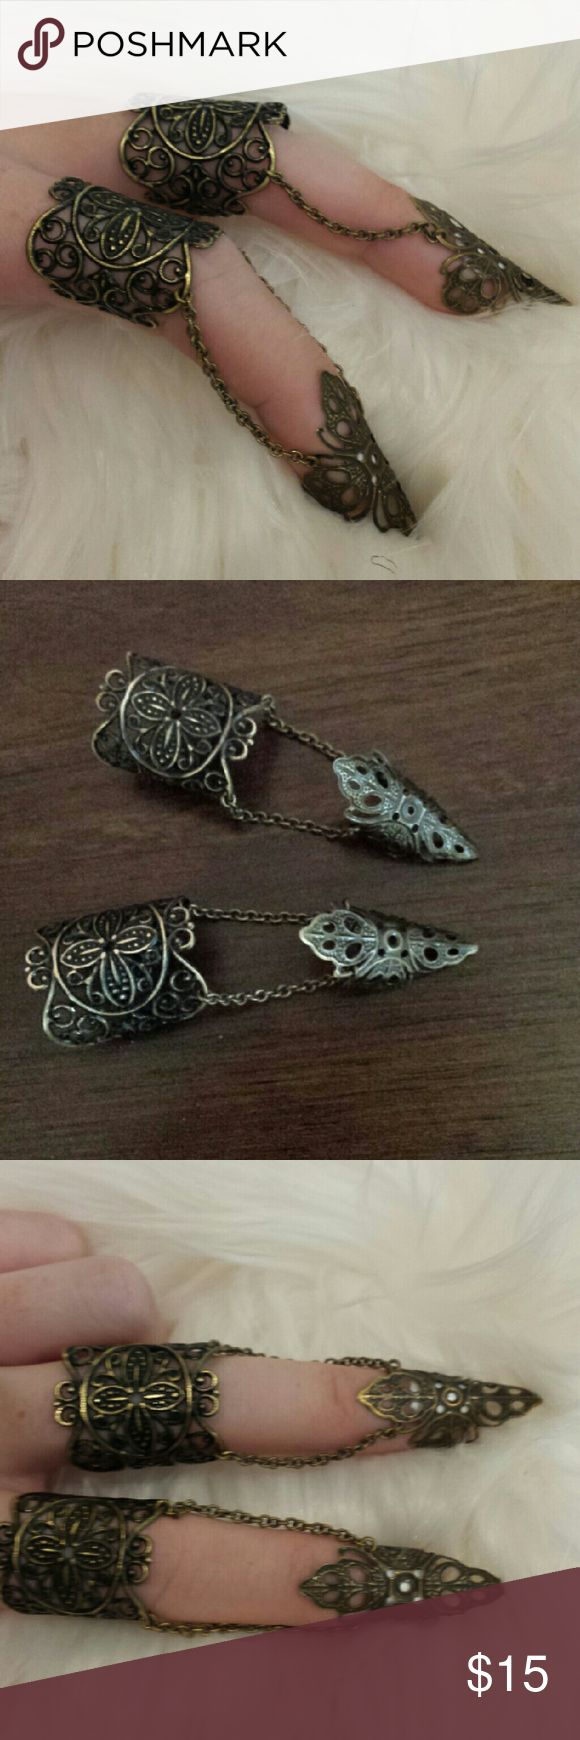 Pair of Elven Finger rings Antique brass filigree with connecting chains between each section.  Fits most fingers and can bend to mold finger snuggly. Jewelry Rings